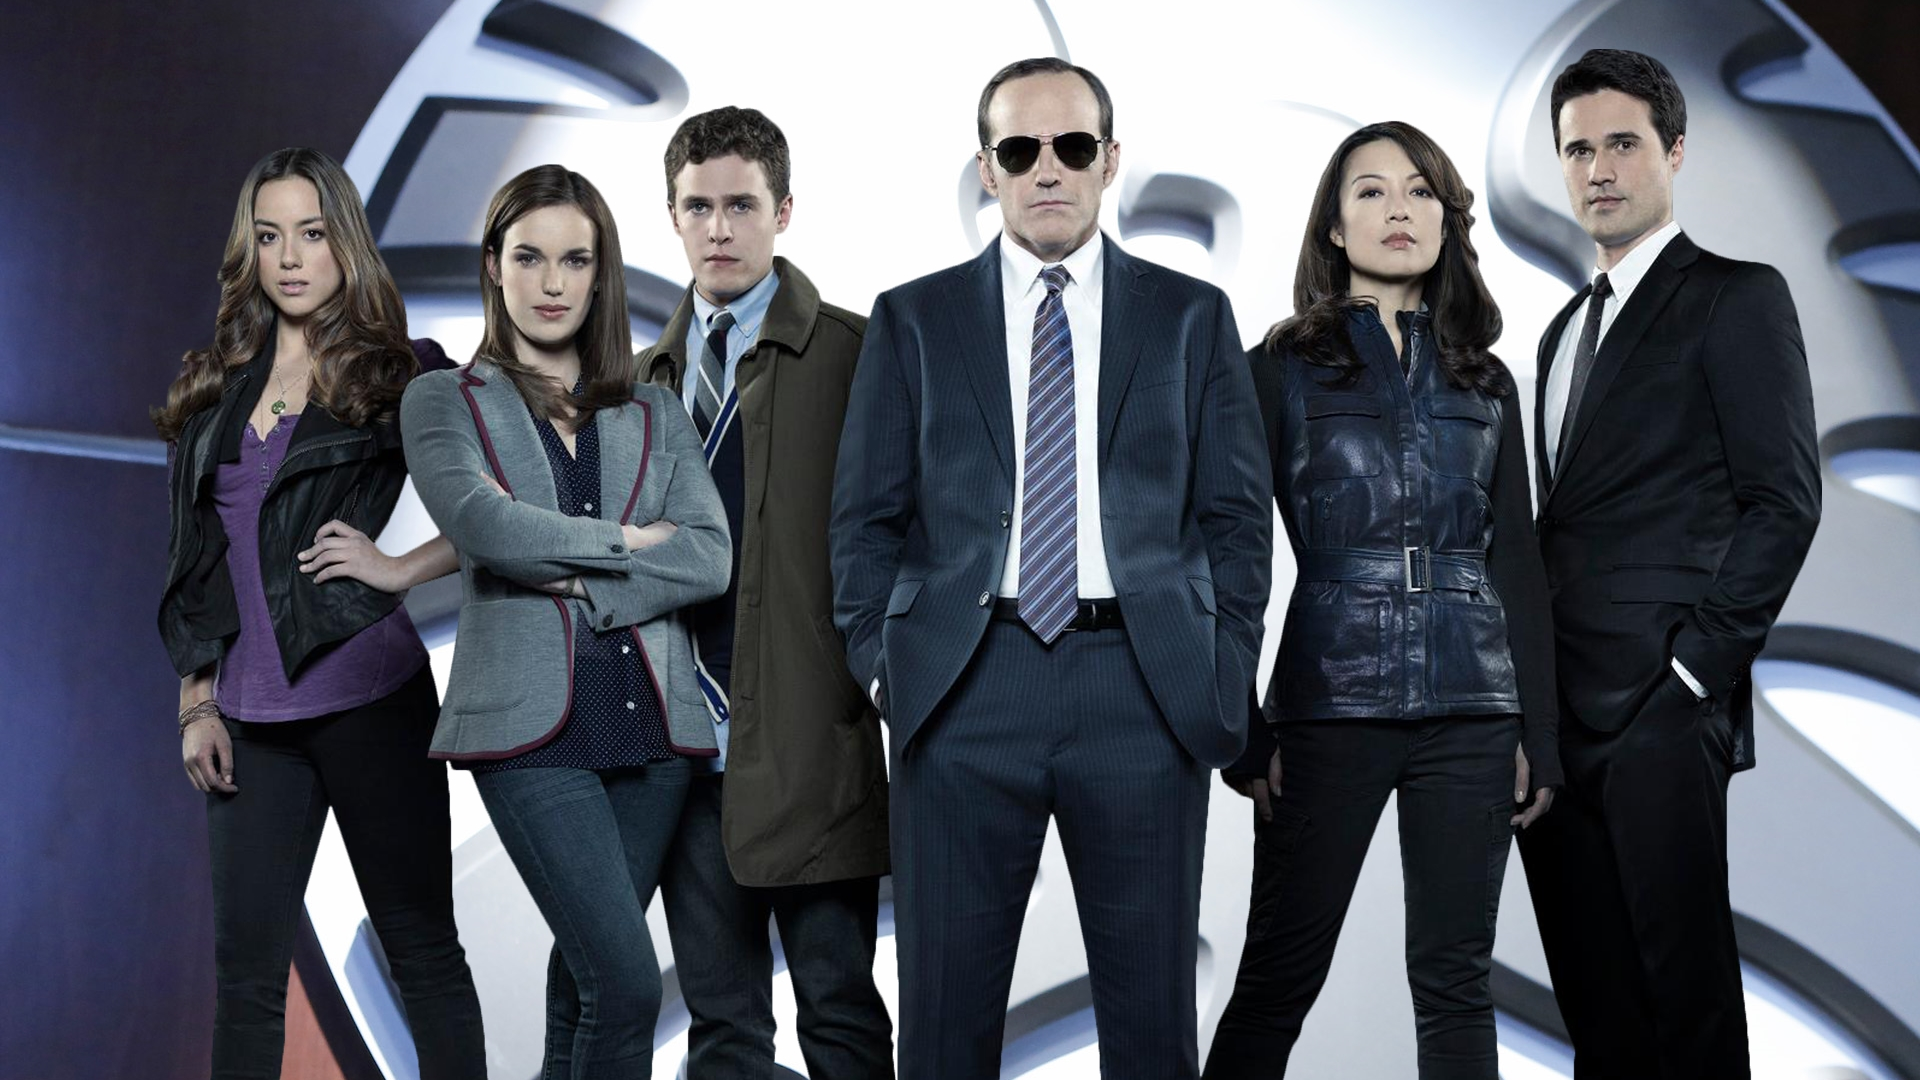 Marvels Agents Of Shield Hd Wallpaper Background Image